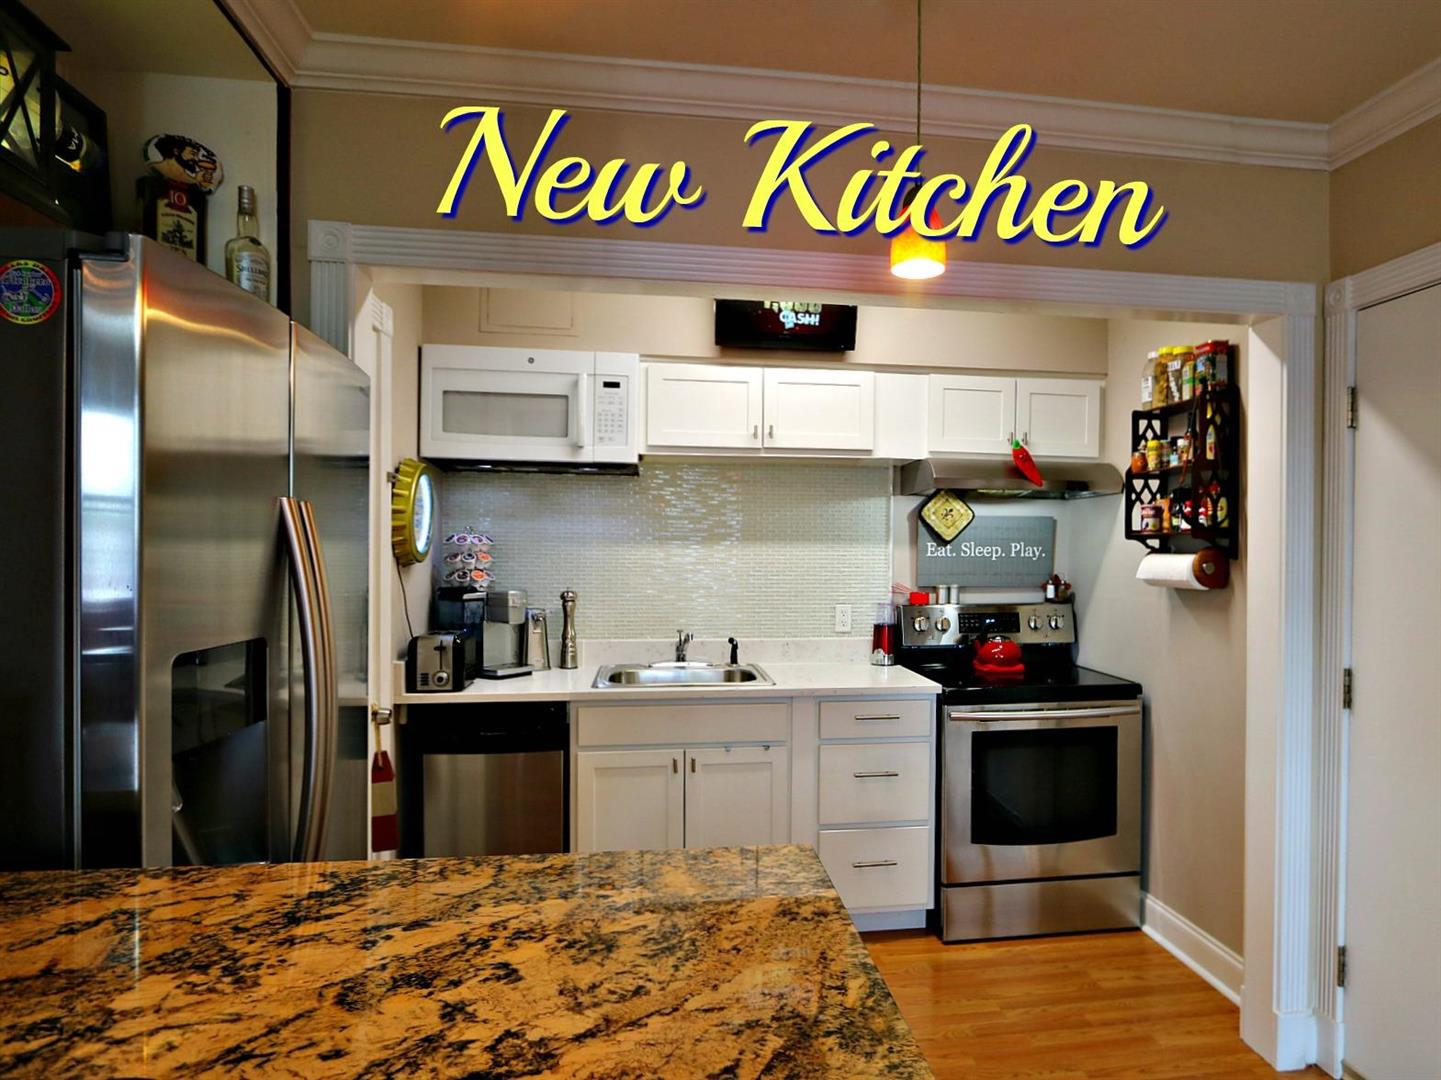 500S.JeffersonDavisPkyCondoKitchenNew.jpg